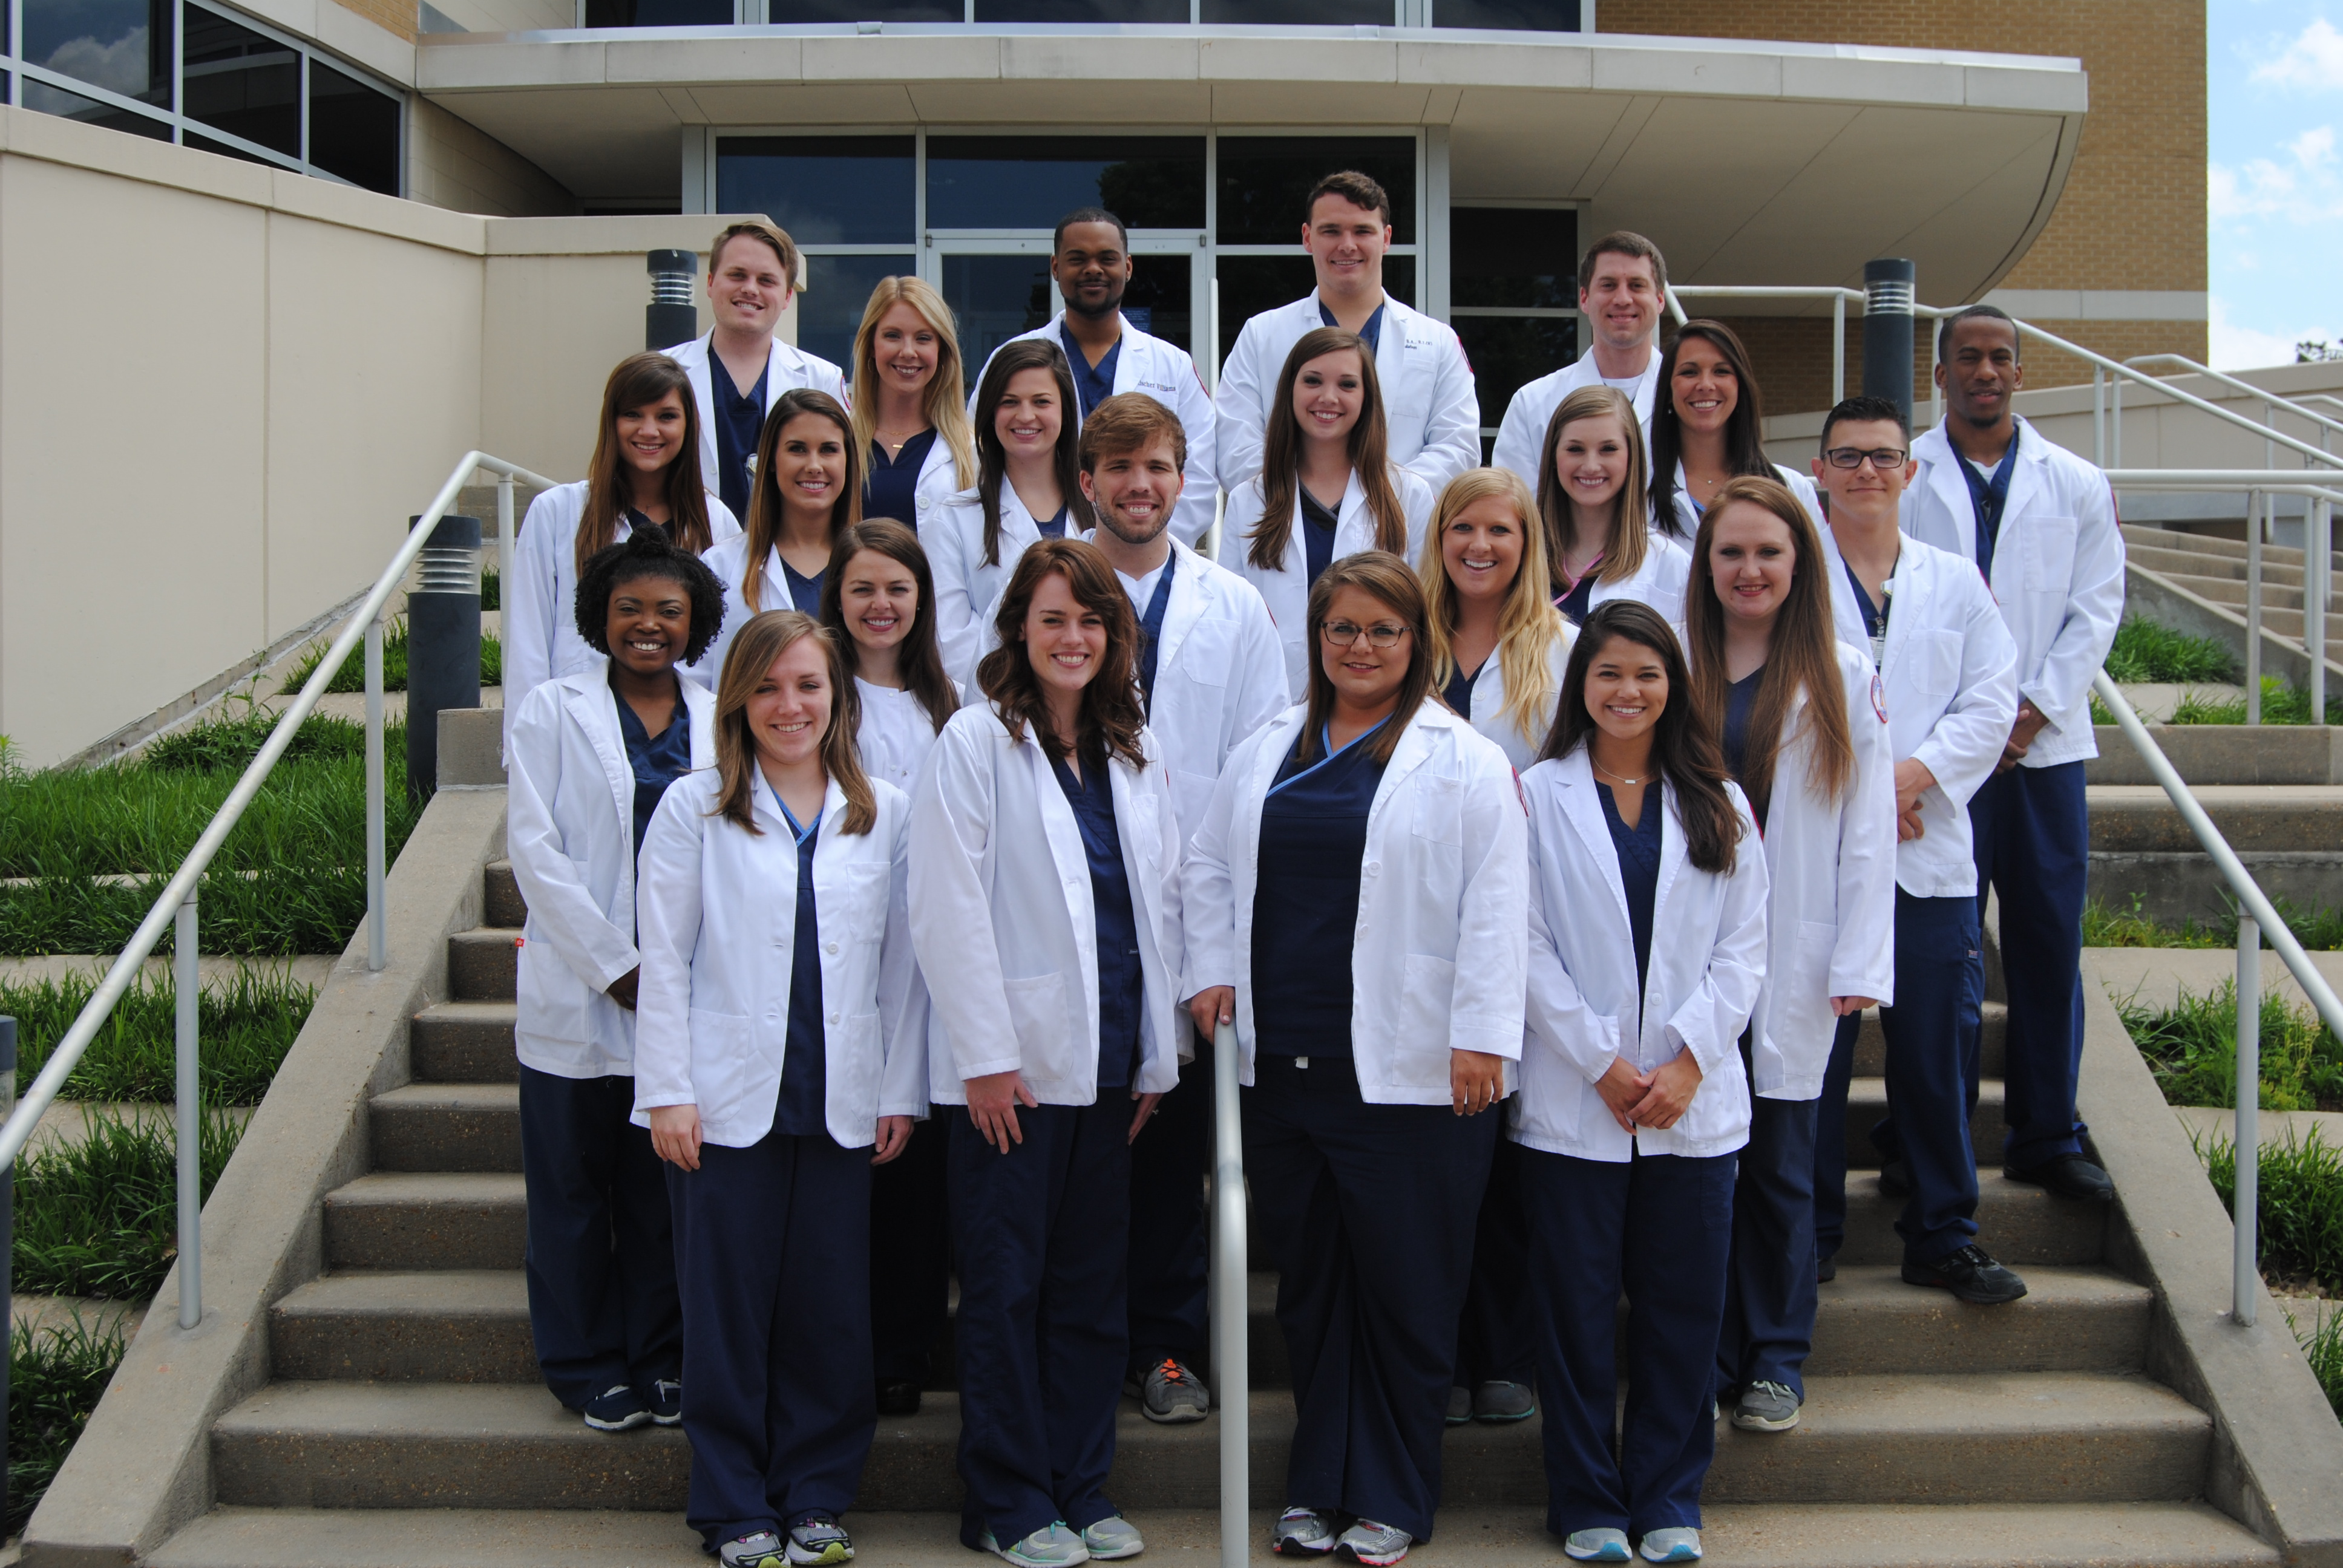 Radiologic sciences graduates who achieved a perfect pass rate include, front row from left, Anne Howard Steinwinder, Shelby Erickson, Alison Sullivan and Liana Wooley; second row from left, Taylor Shumpert, Alexa Graham, Tyler Johnson, Hanna Kemp and Alex Noah; third row from left, Mary Hooper Mason, Kala Ford, Anna Crawford, Savannah Gillis, Kimberly Tolliver, Leah Santucci, Anthony Chirinos and Jeremy Williams; and back row from left, Brooks Jackson, Victoria Hardwick, Rischer Williams, Tyler Gray and Tyler Burnett.